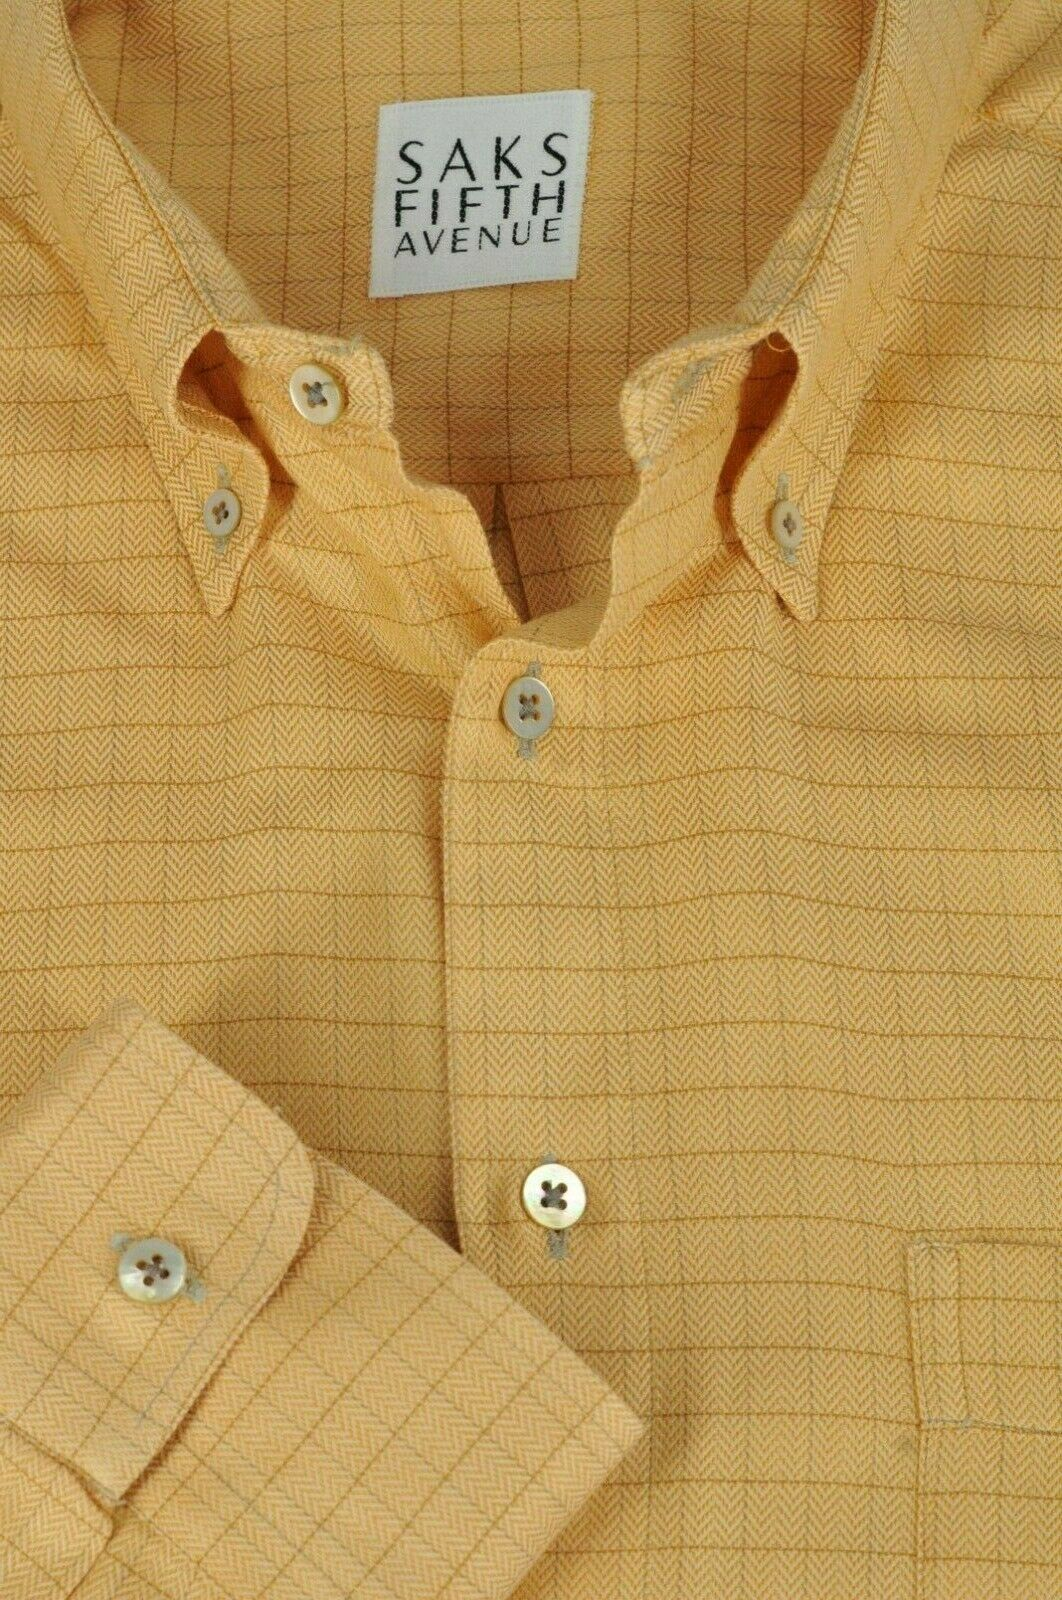 f72cada1 Saks Fifth Avenue Men's golden orange Grid Cotton Casual Shirt XL XLarge.  By: Mountain Hardwear Stretchstone Utility Long Sleeve ...